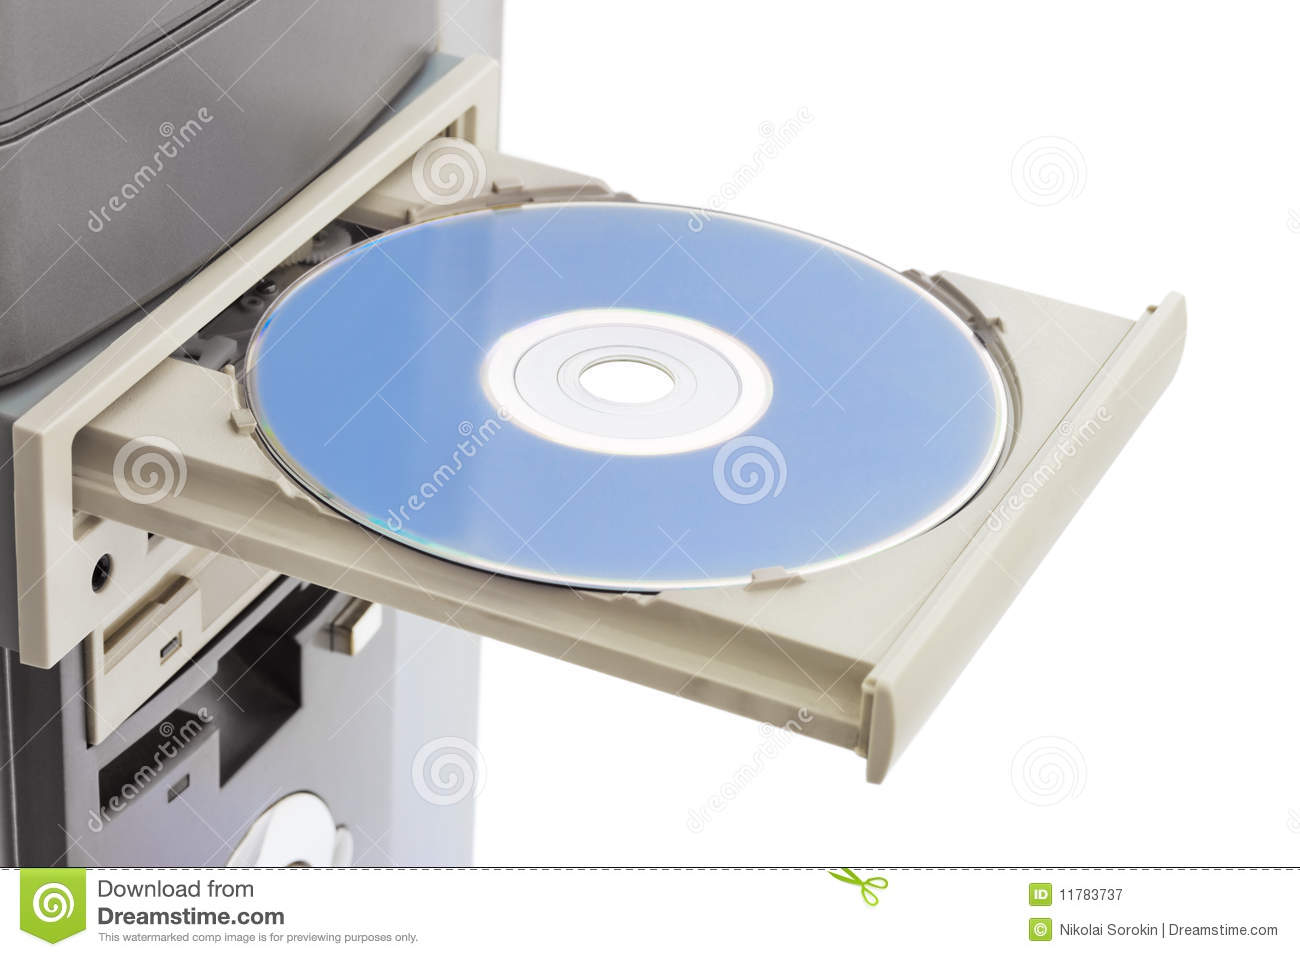 computer and cd rom Cd-rw discs electronics computers computer accessories product - portable universal usb drive external dvd cd writer cd-rom drive for computer burn disc.